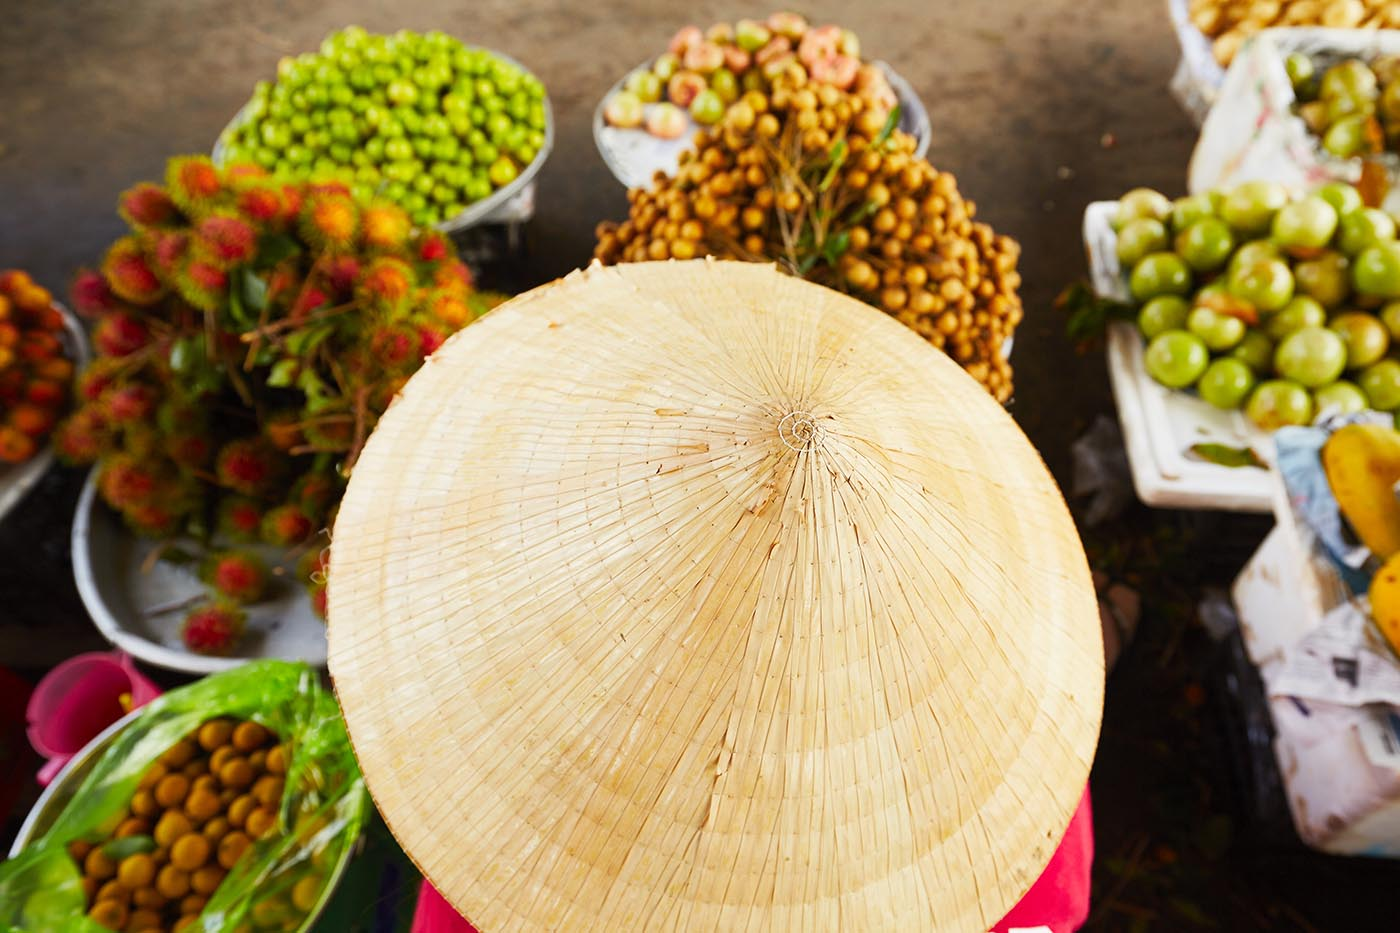 Vietnamese Street Food: Traditional Vietnamese Food and Recipes From Hanoi